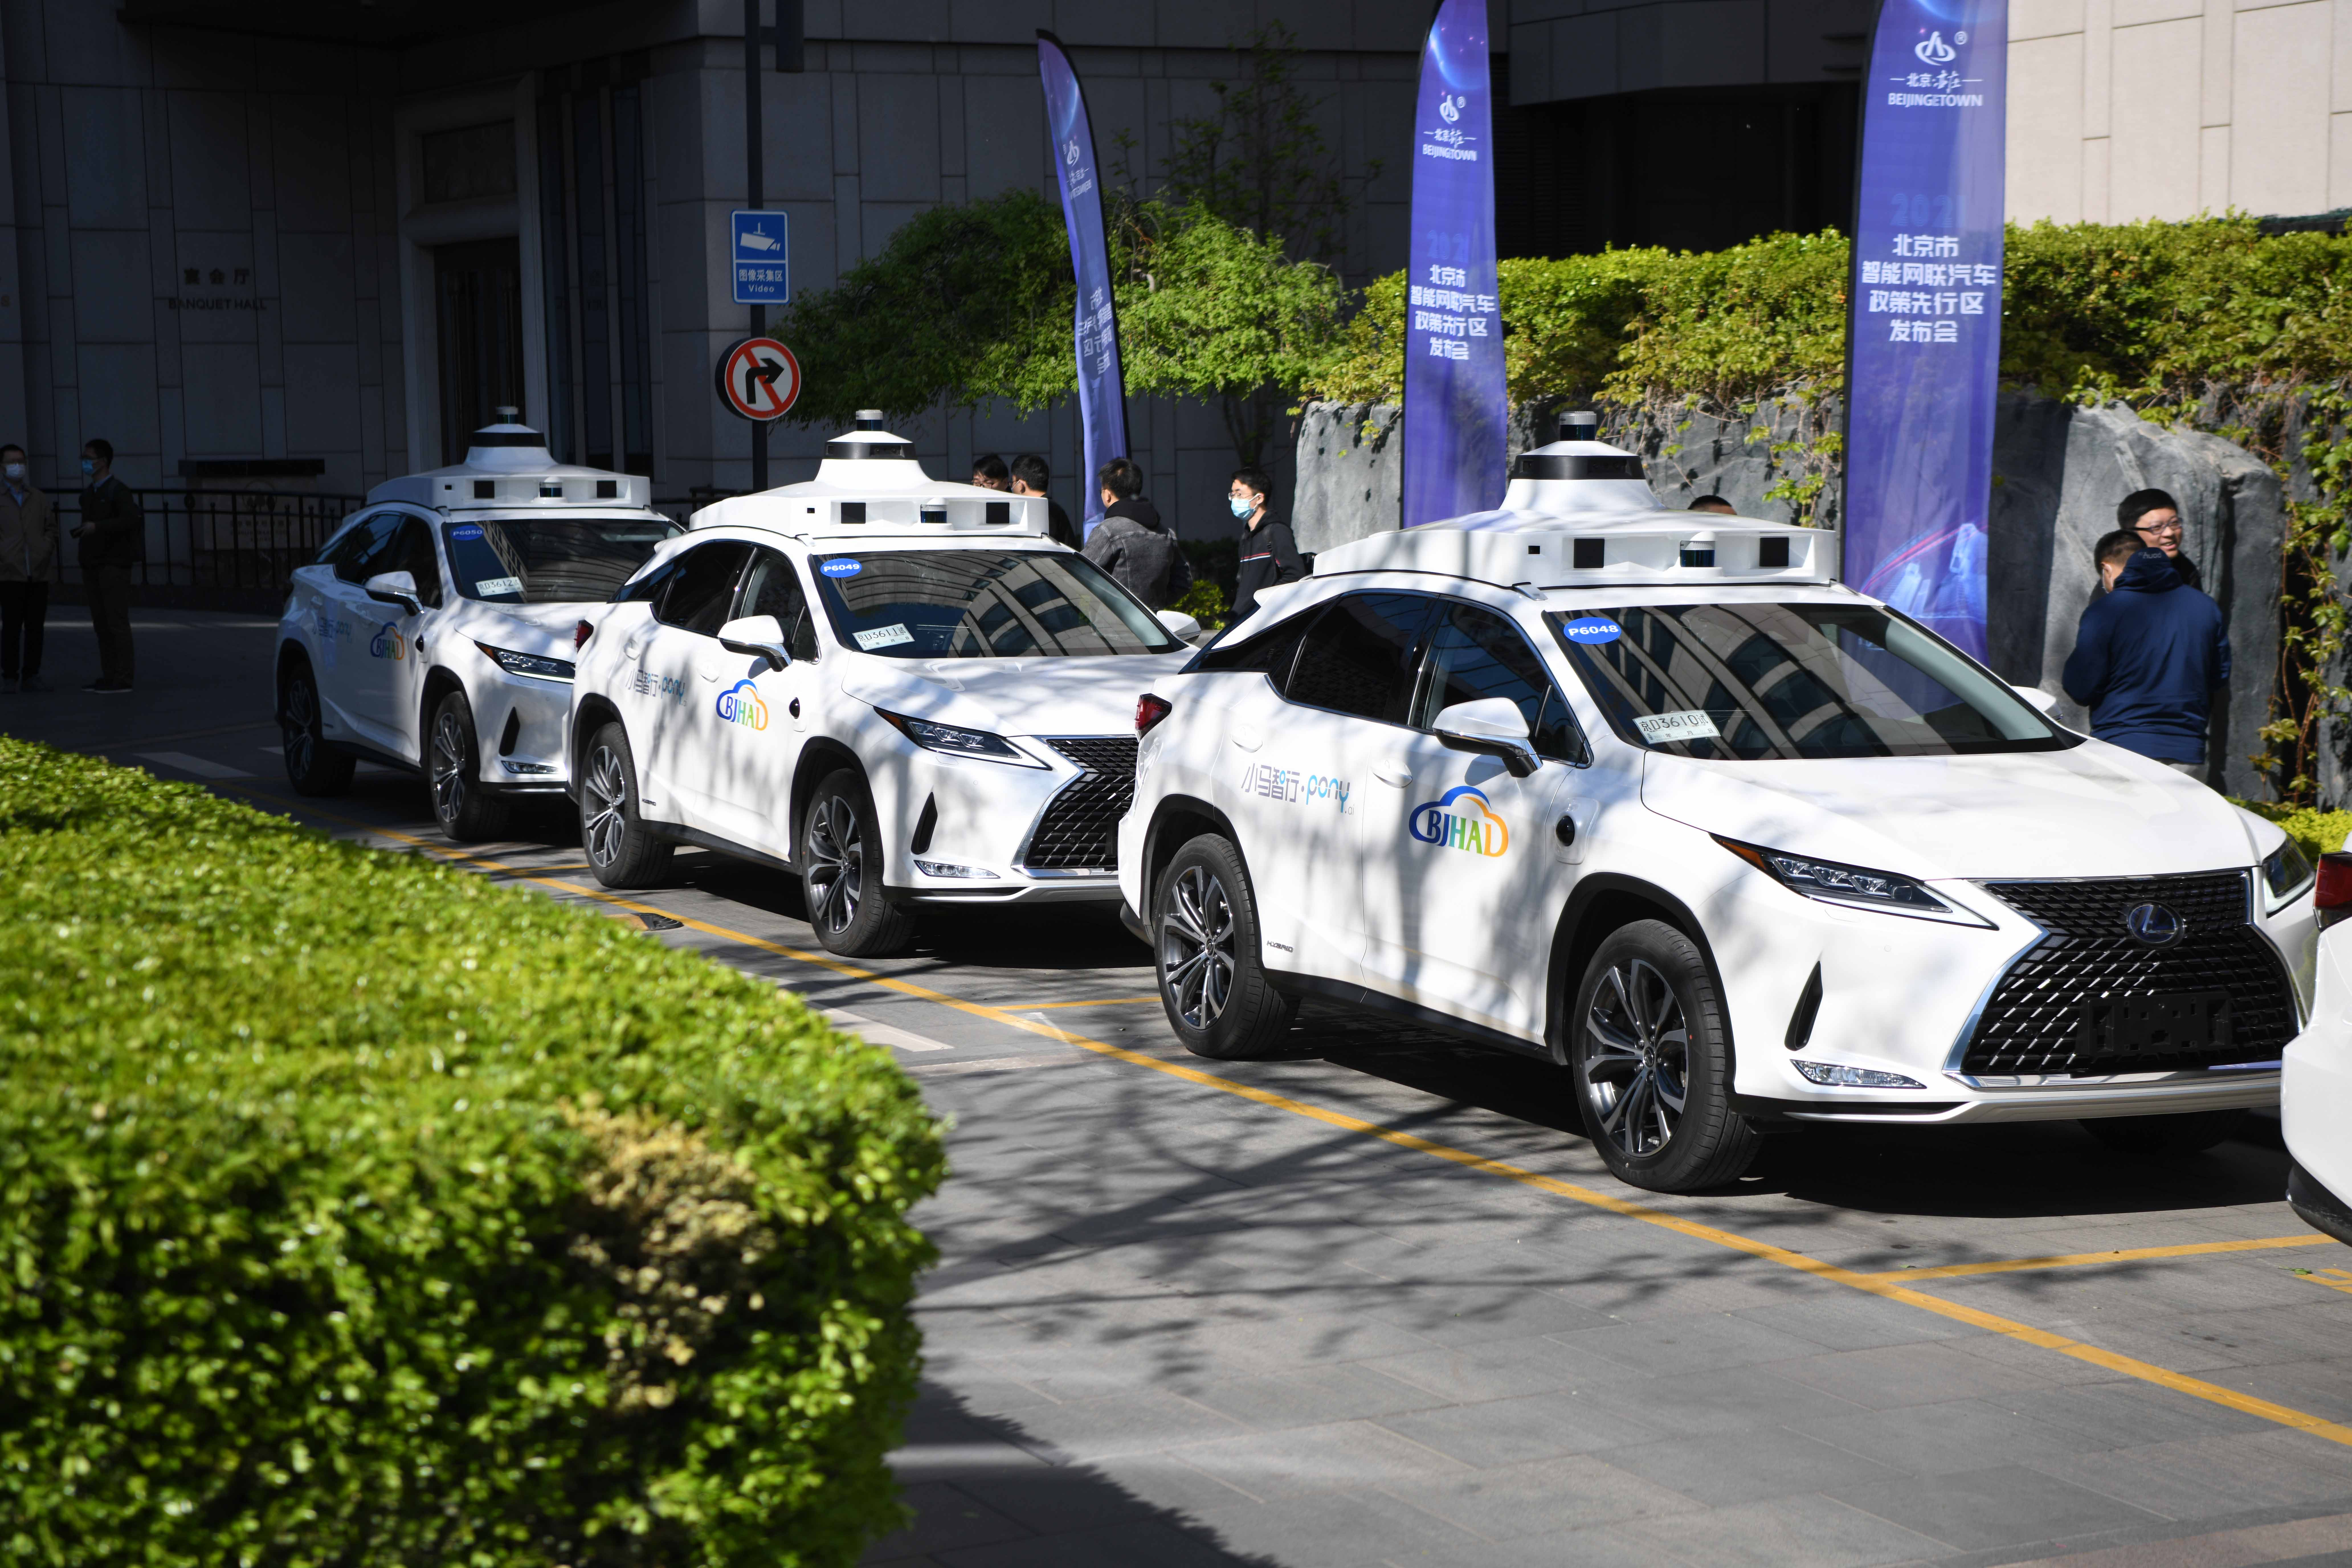 Autonomous vehicles from Pony.ai in Beijing in April 2021.